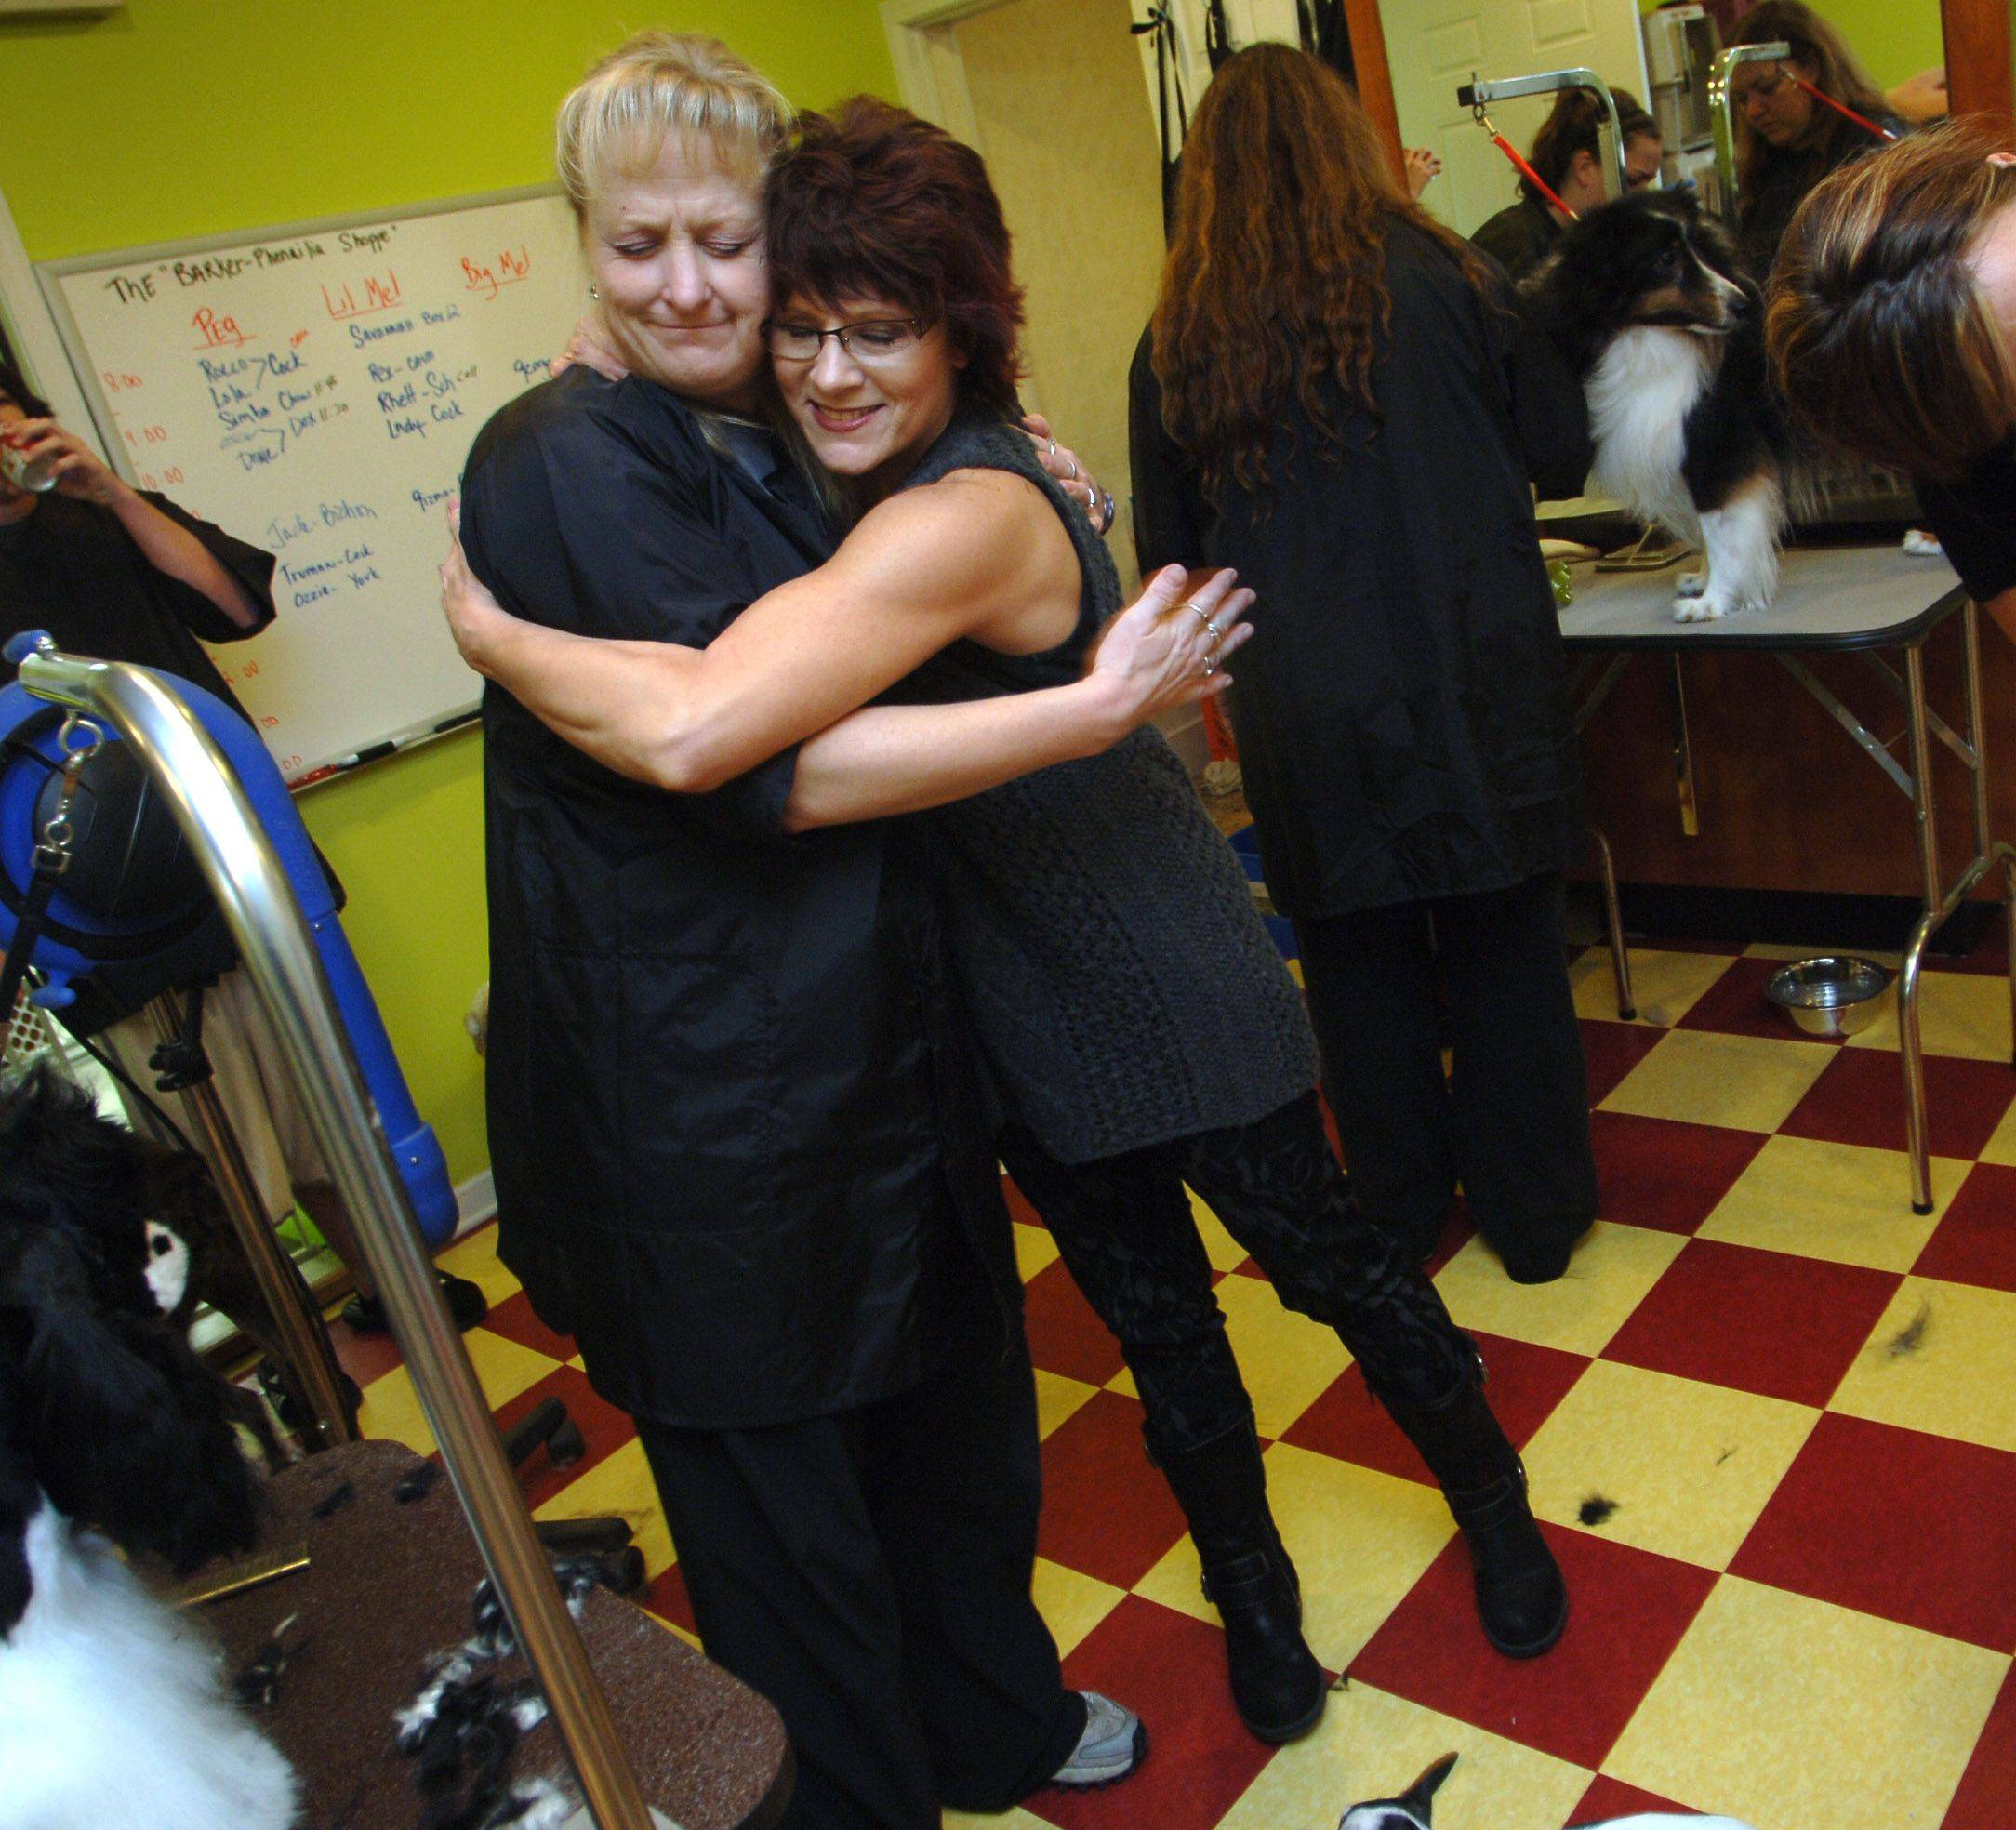 Peg Sennett, left, has relocated and opened her Barker Shoppe Dog Grooming Salon after fire damaged the downtown Antioch business last week. The shop is set up in the rear of Hairaphernailia whose owner, Kathi Thompson, gives Peg a hug Monday.